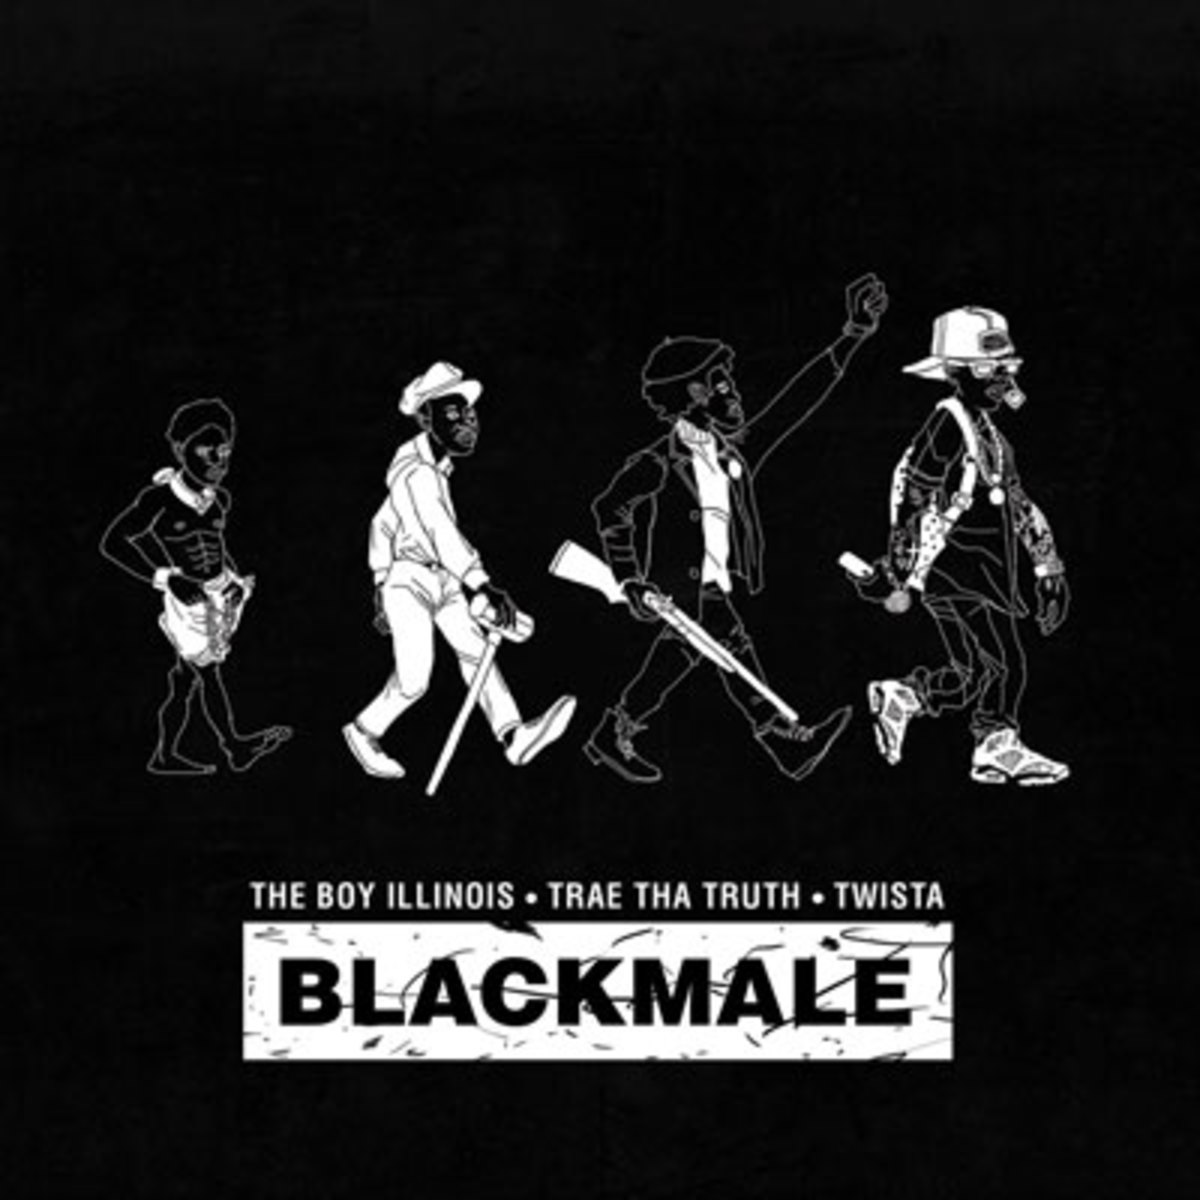 boyillinois-blackmale.jpg